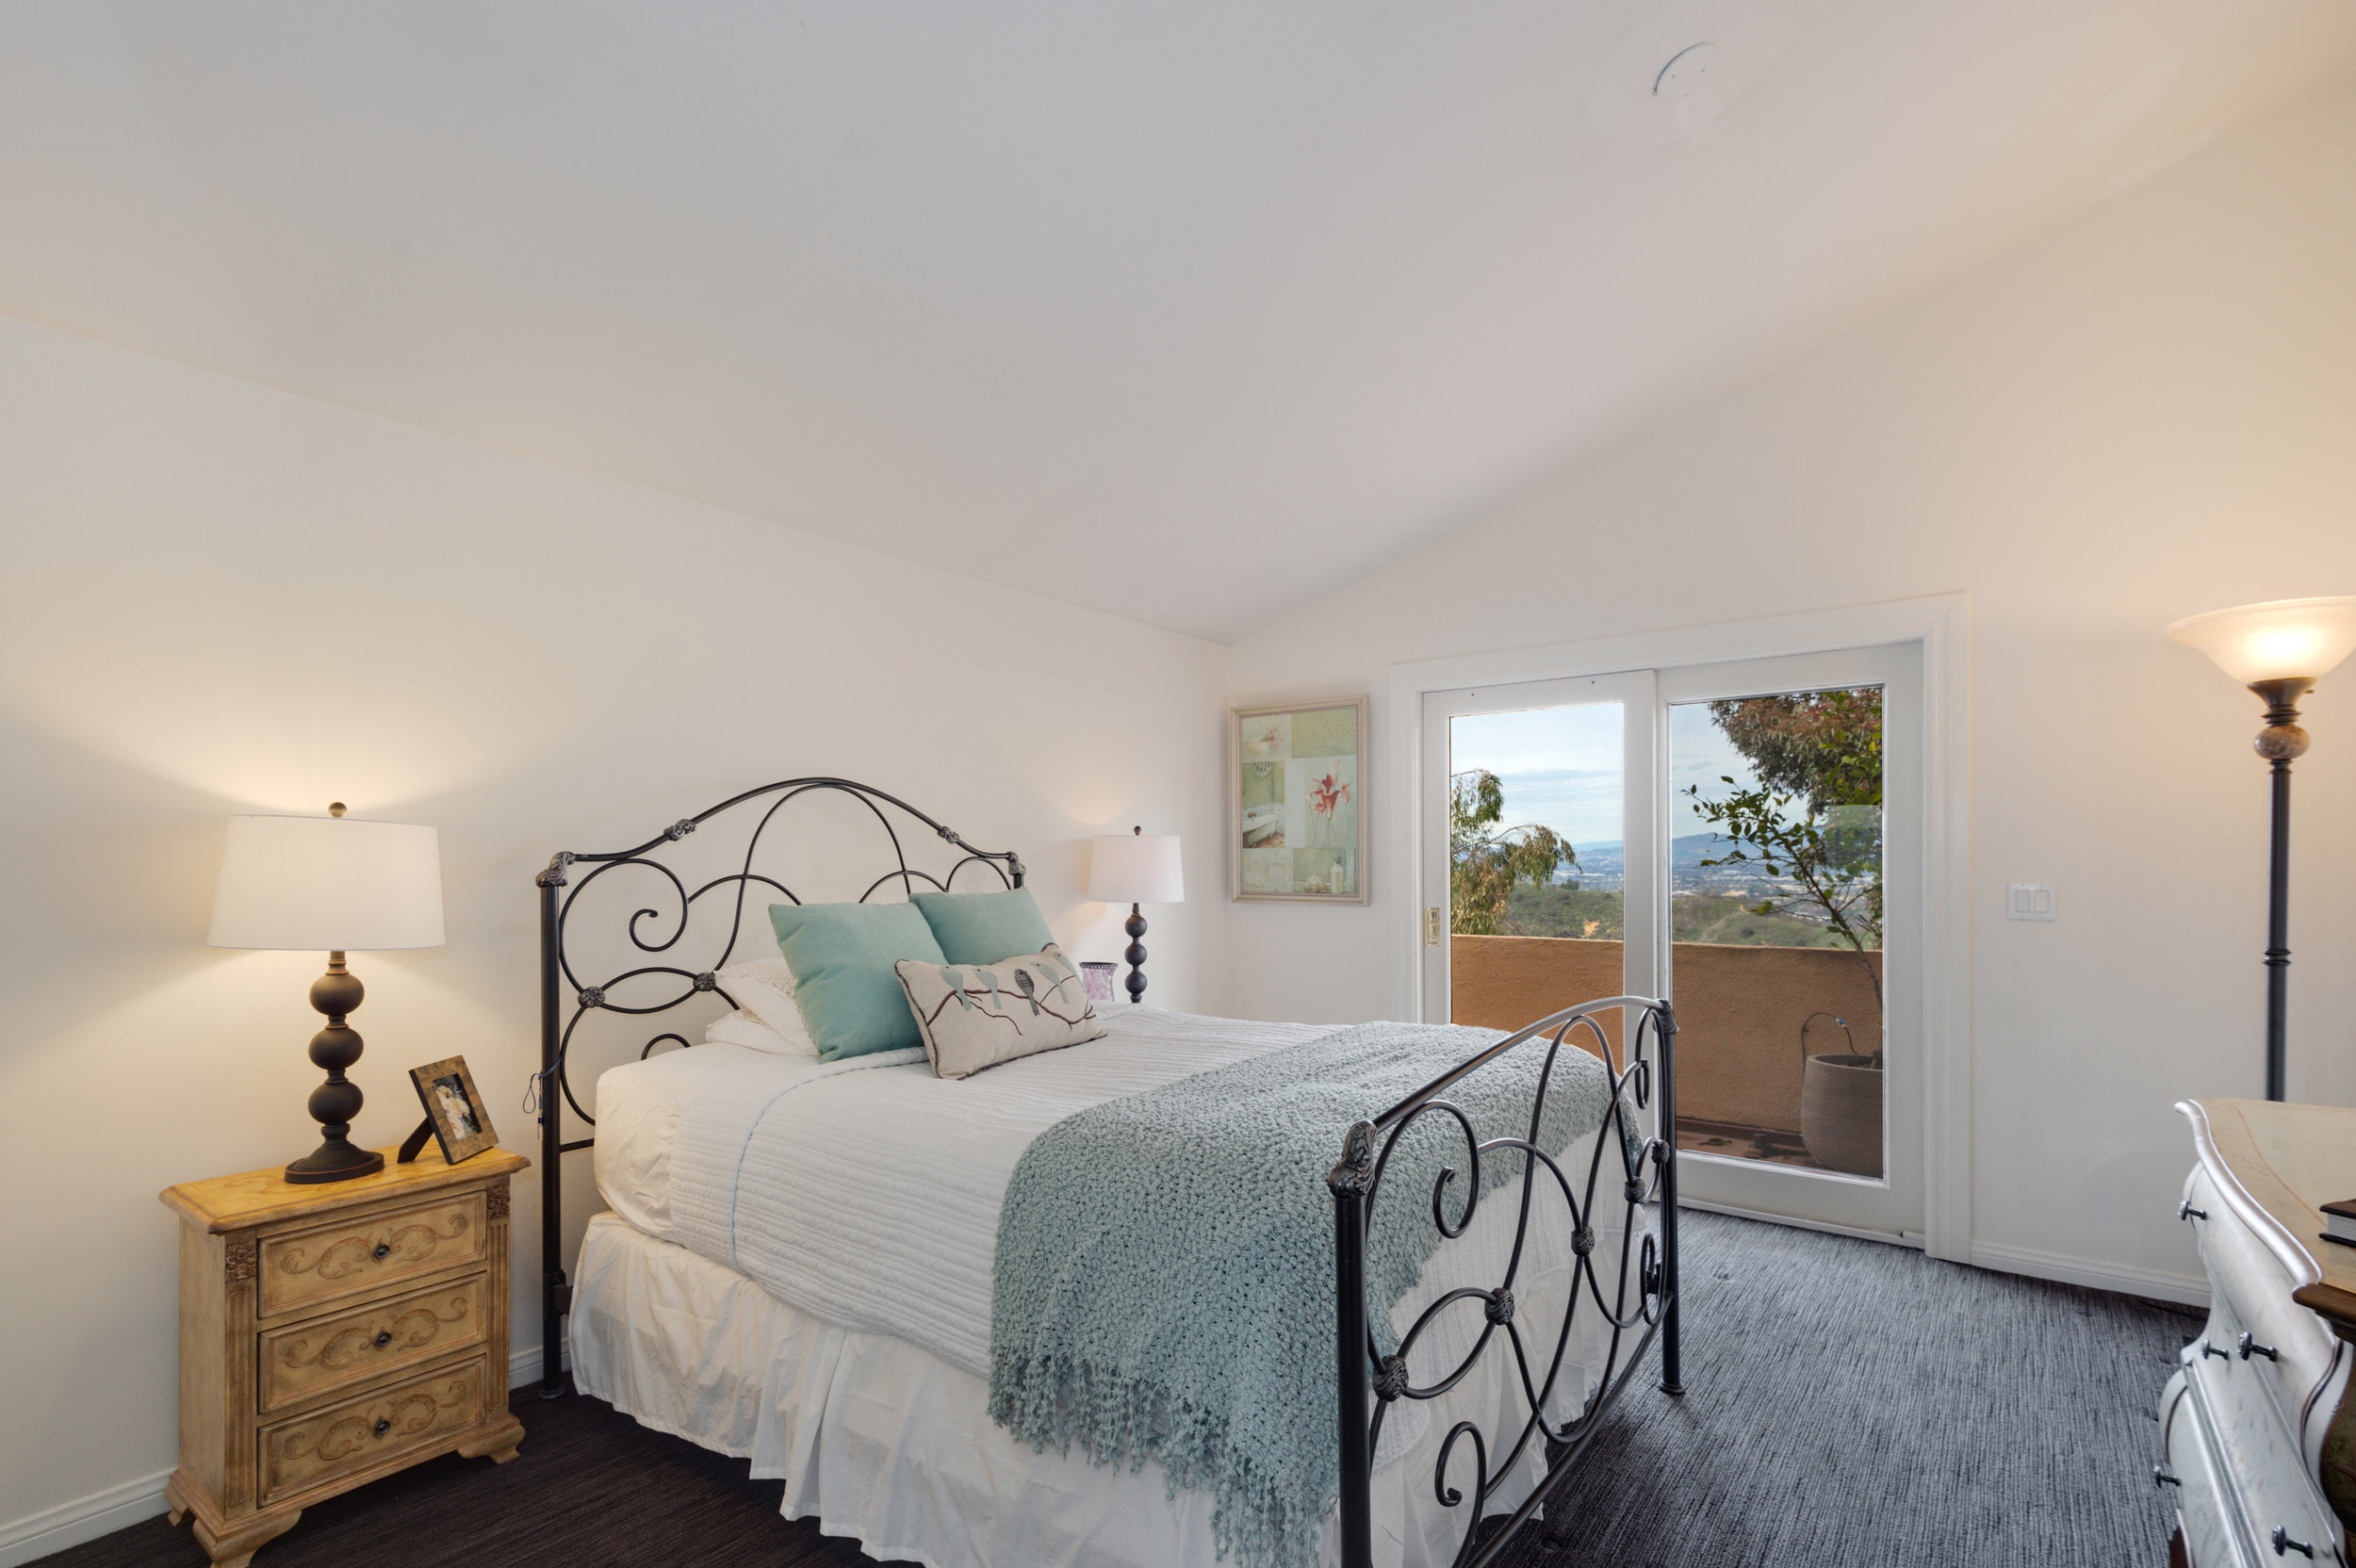 024 Bedroom 12027 Talus Place Beverly Hills 90210 For Sale Lease The Malibu Life Team Luxury Real Estate.jpg